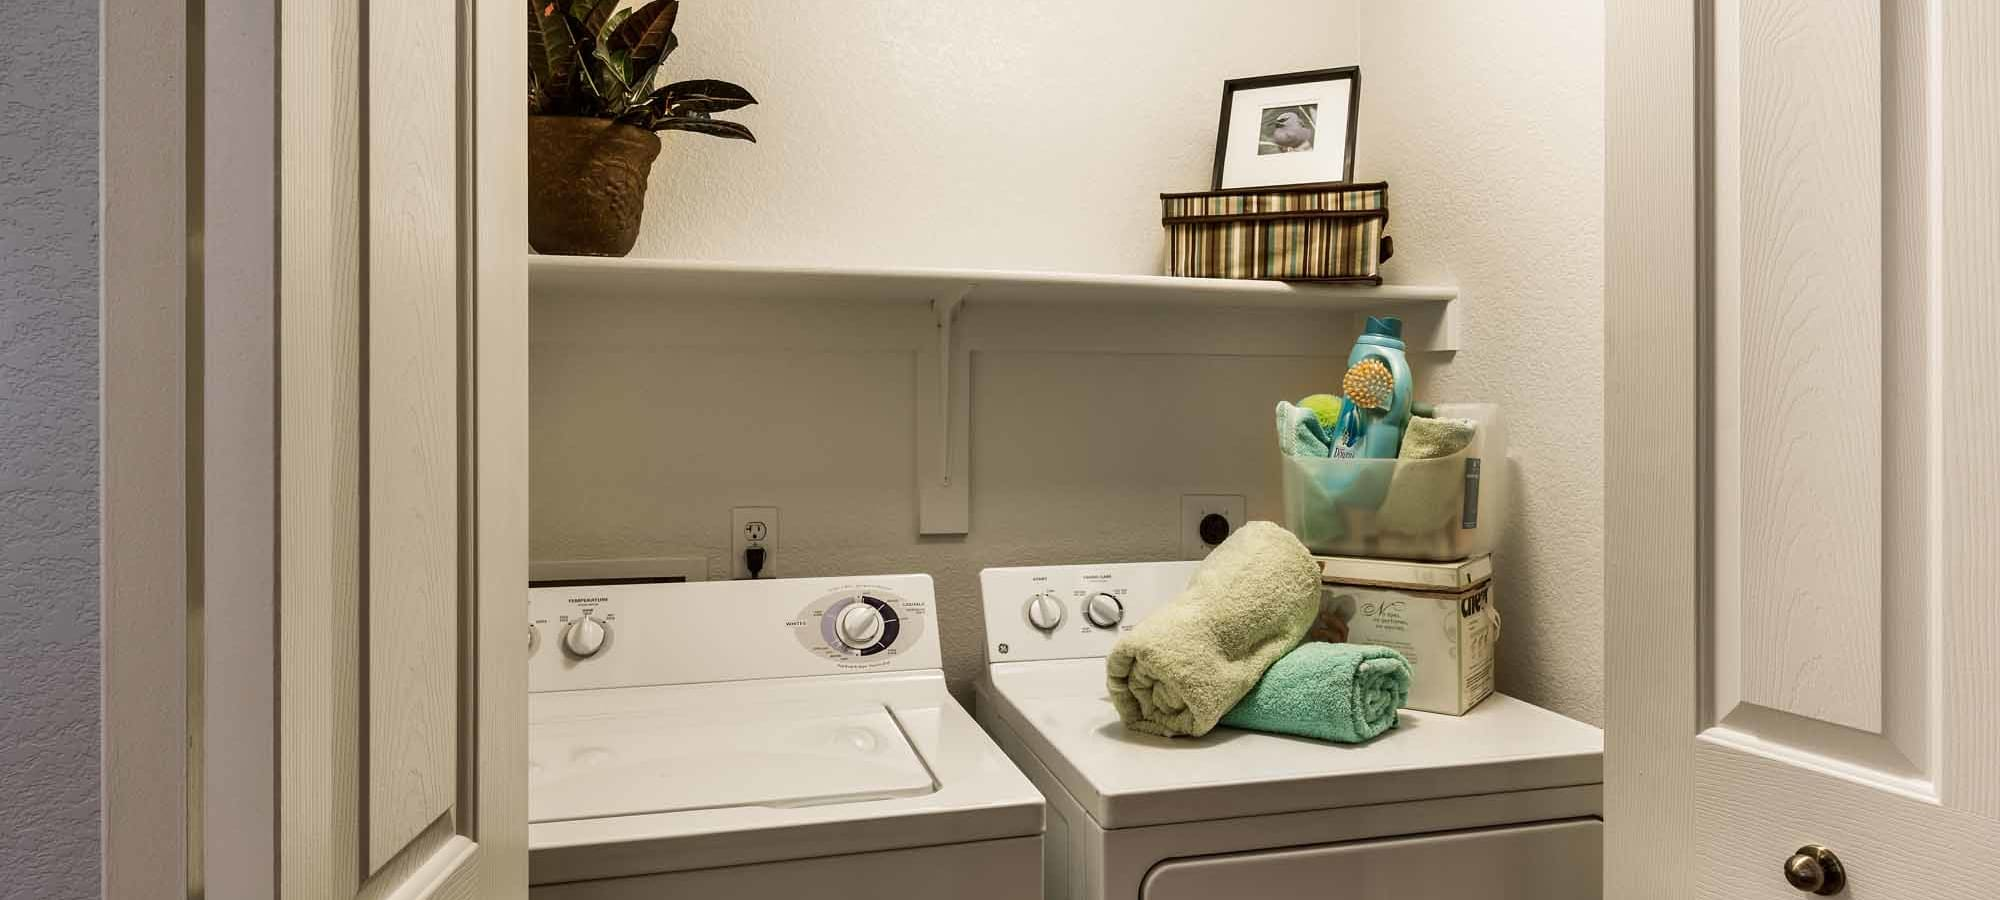 Full size washer and dryer in model home at San Marbeya in Tempe, Arizona